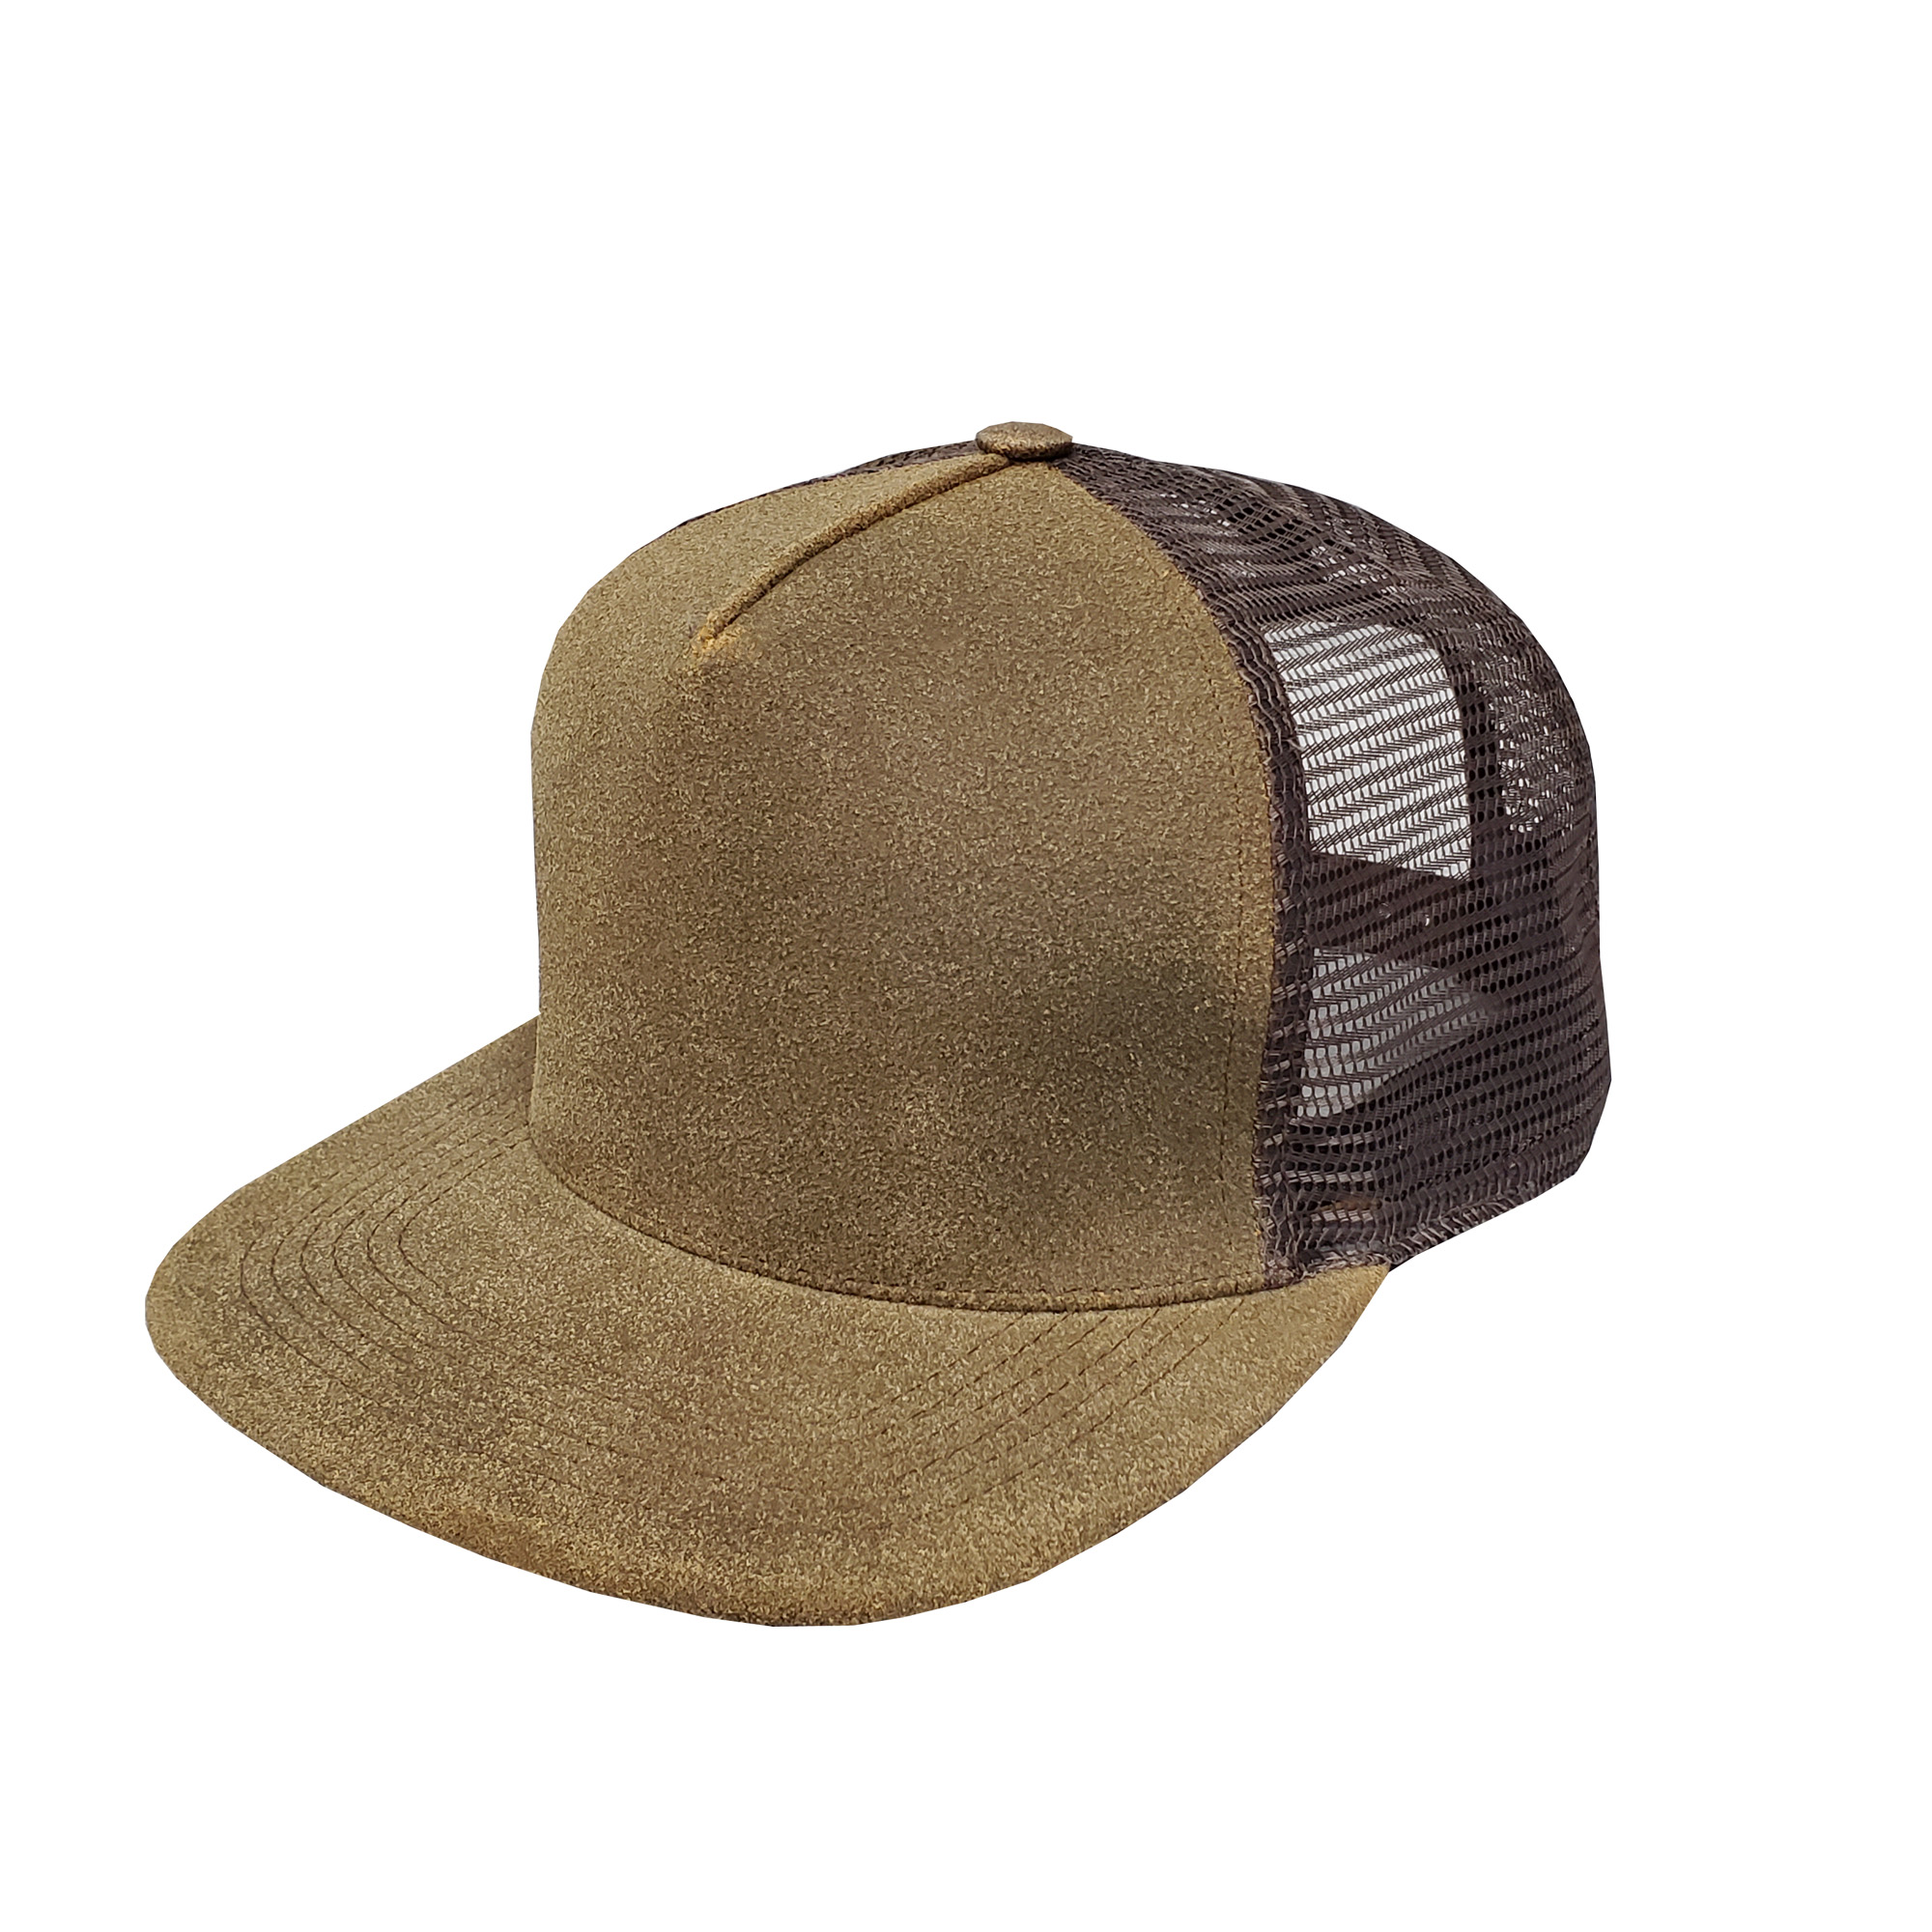 Distressed Brown Leather High-Profile Mesh Cap